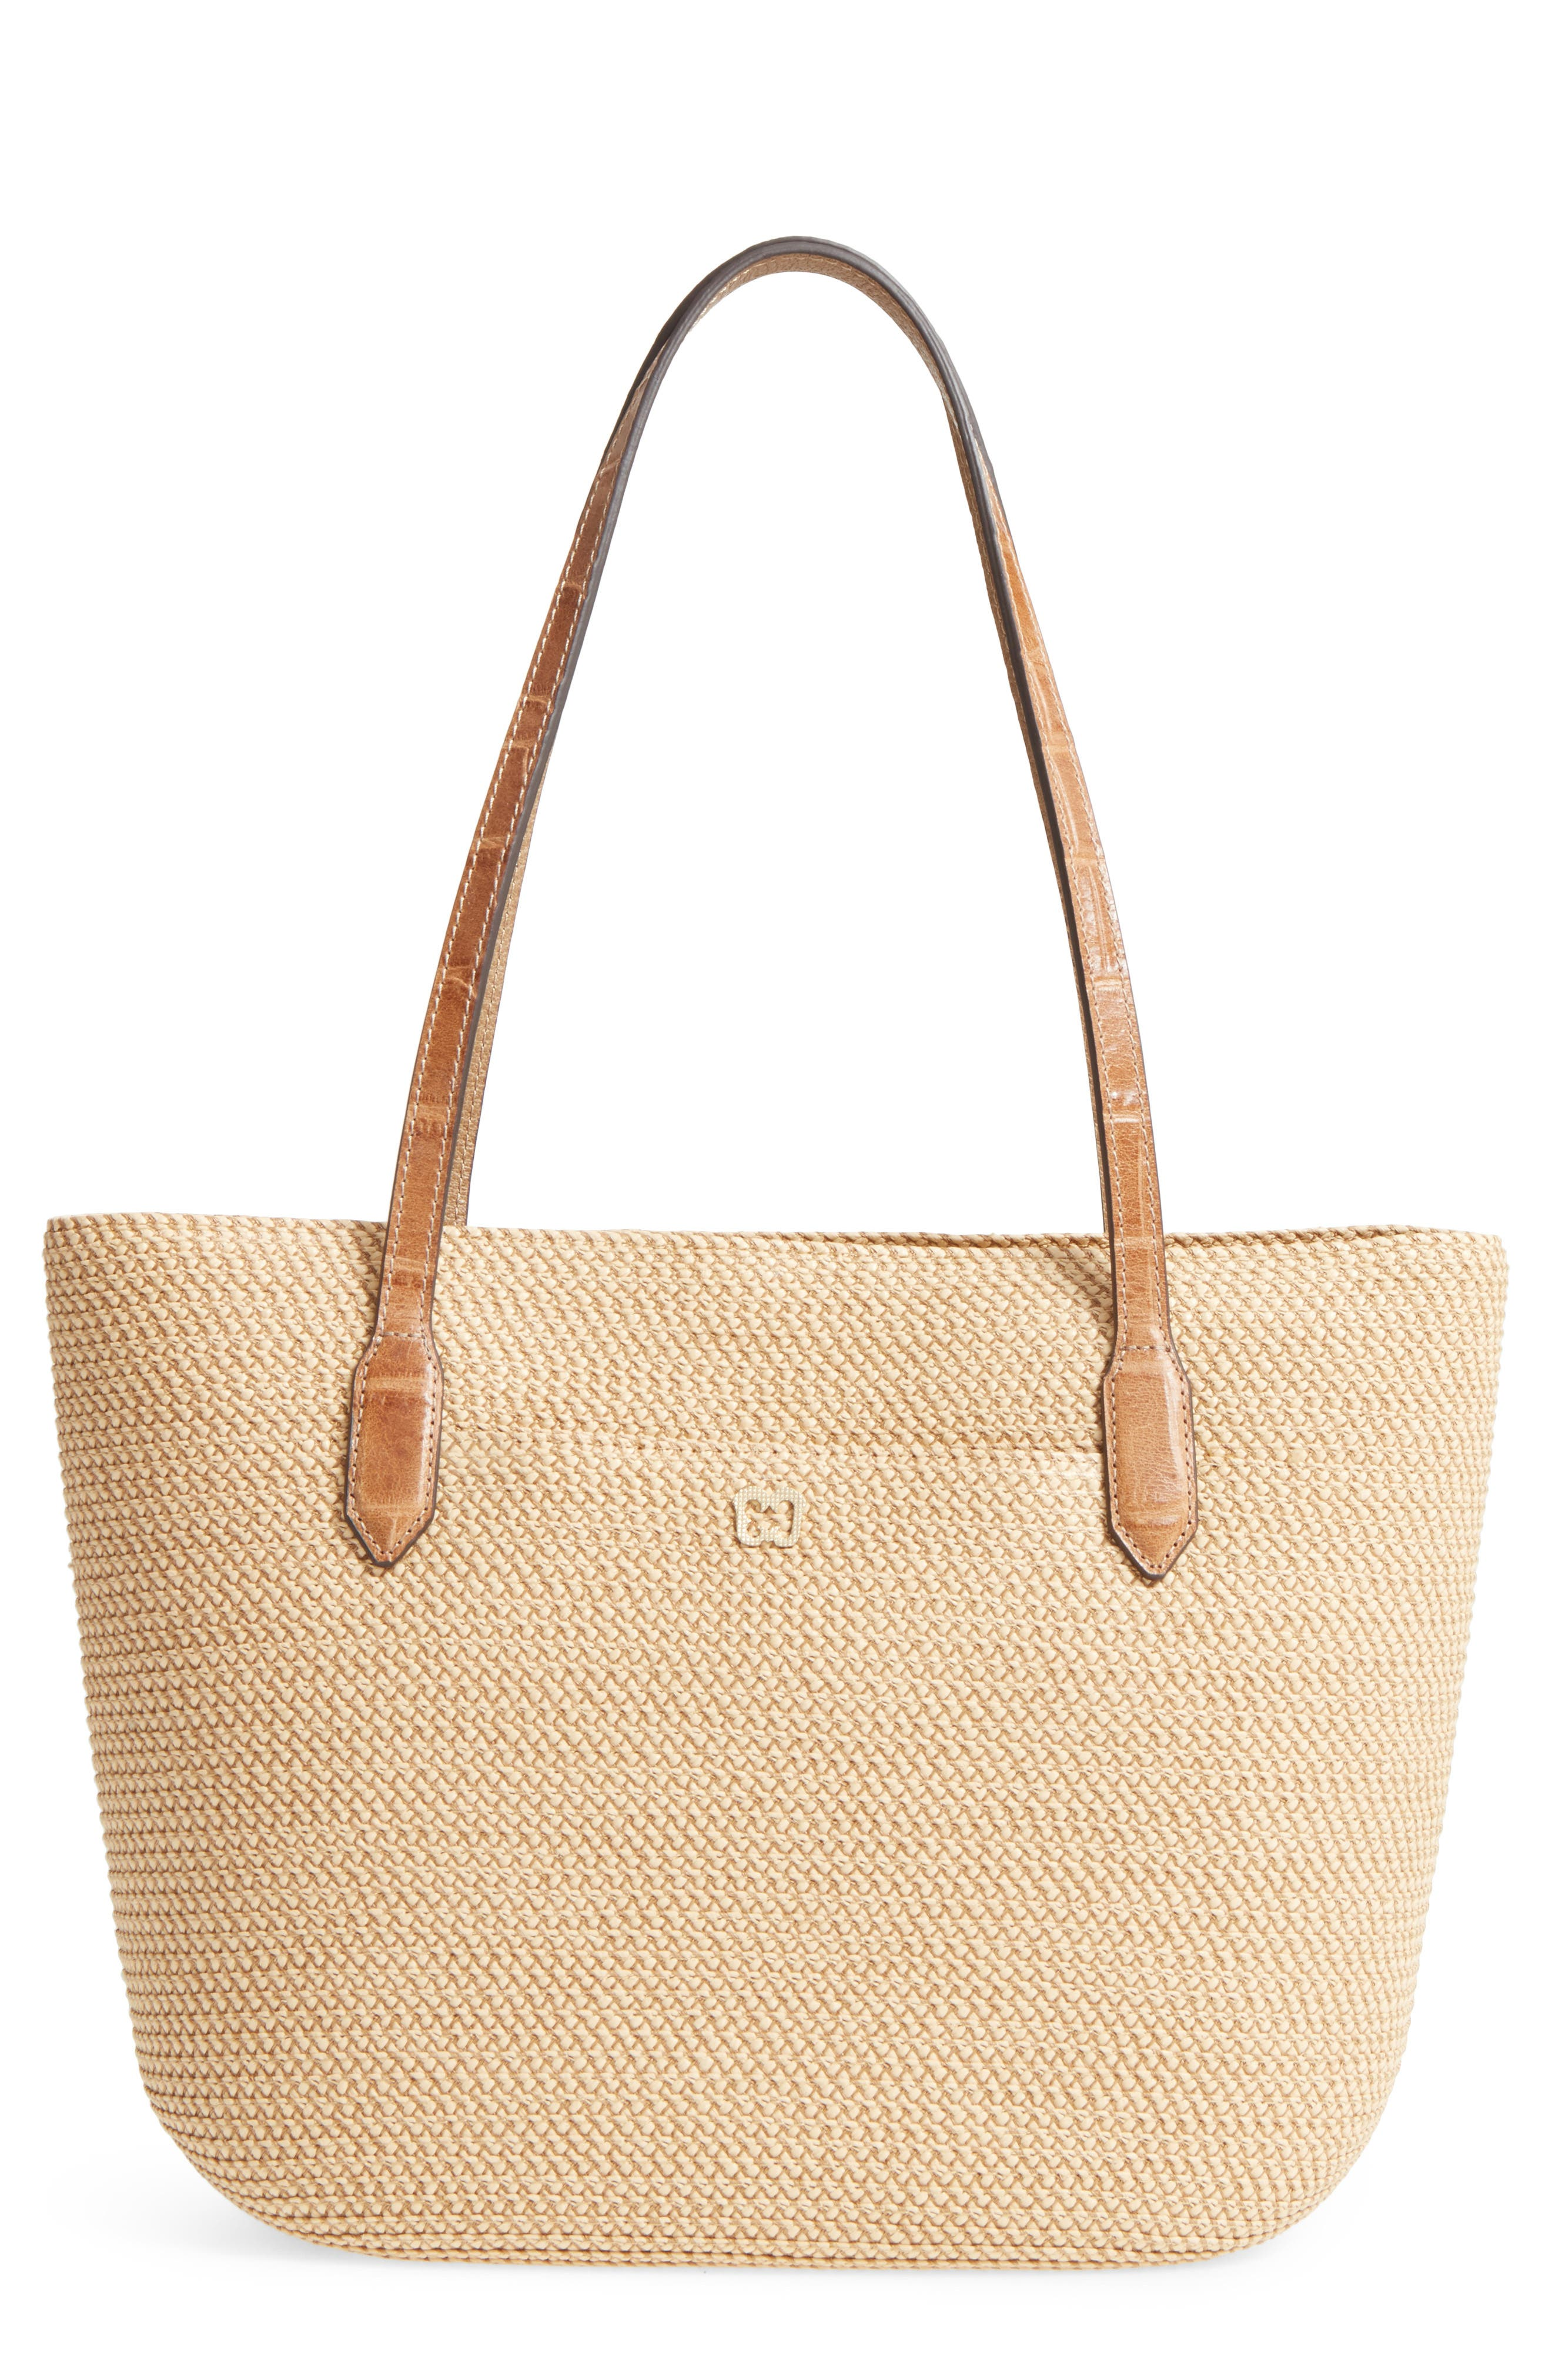 Jav IV Squishee<sup>®</sup> Tote,                         Main,                         color, Peanut